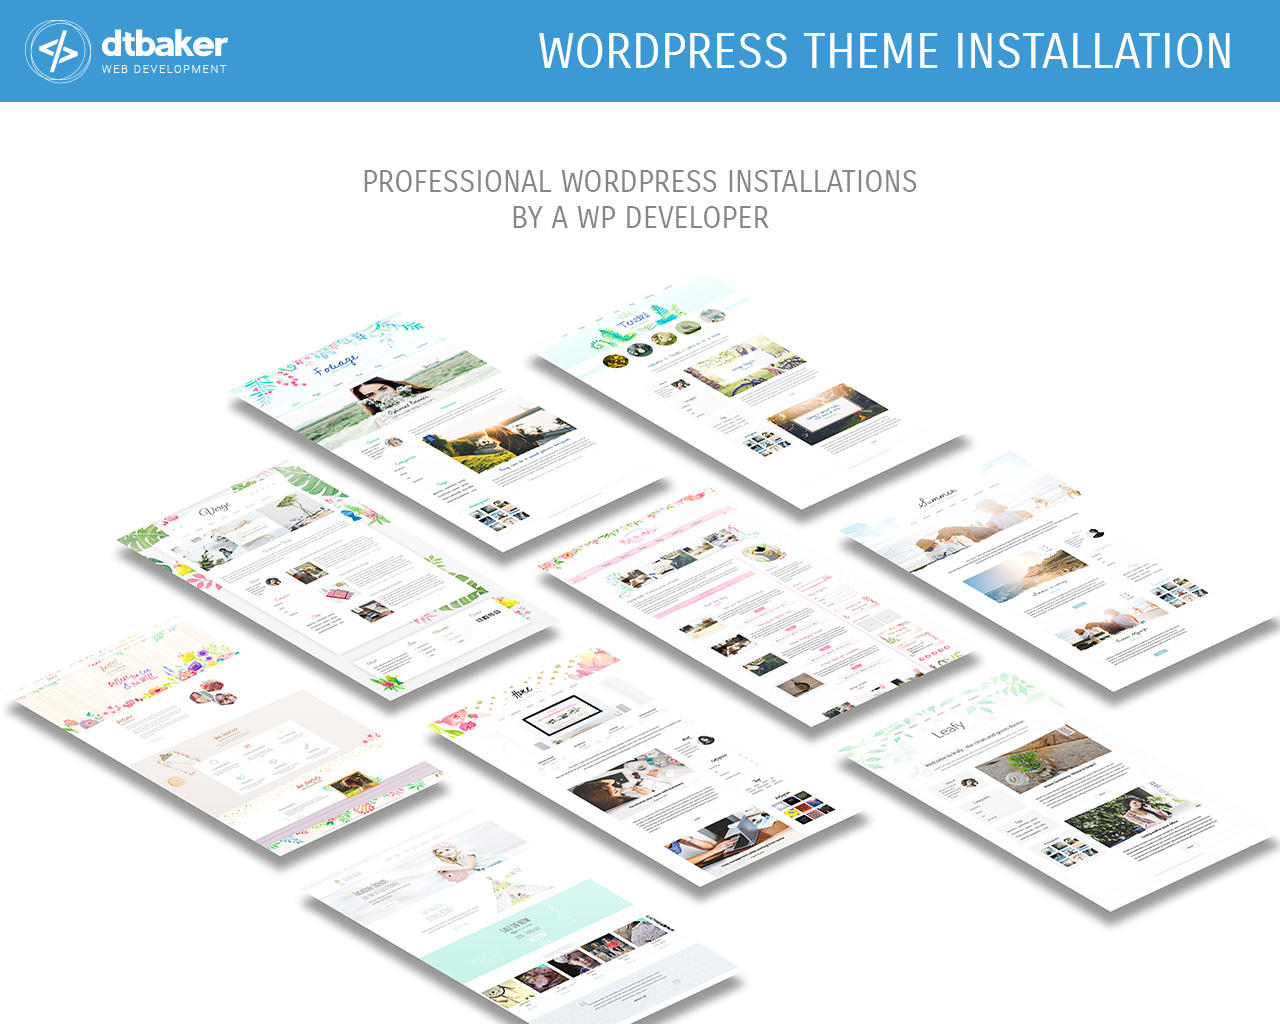 WordPress Theme Installation by dtbaker - 106205